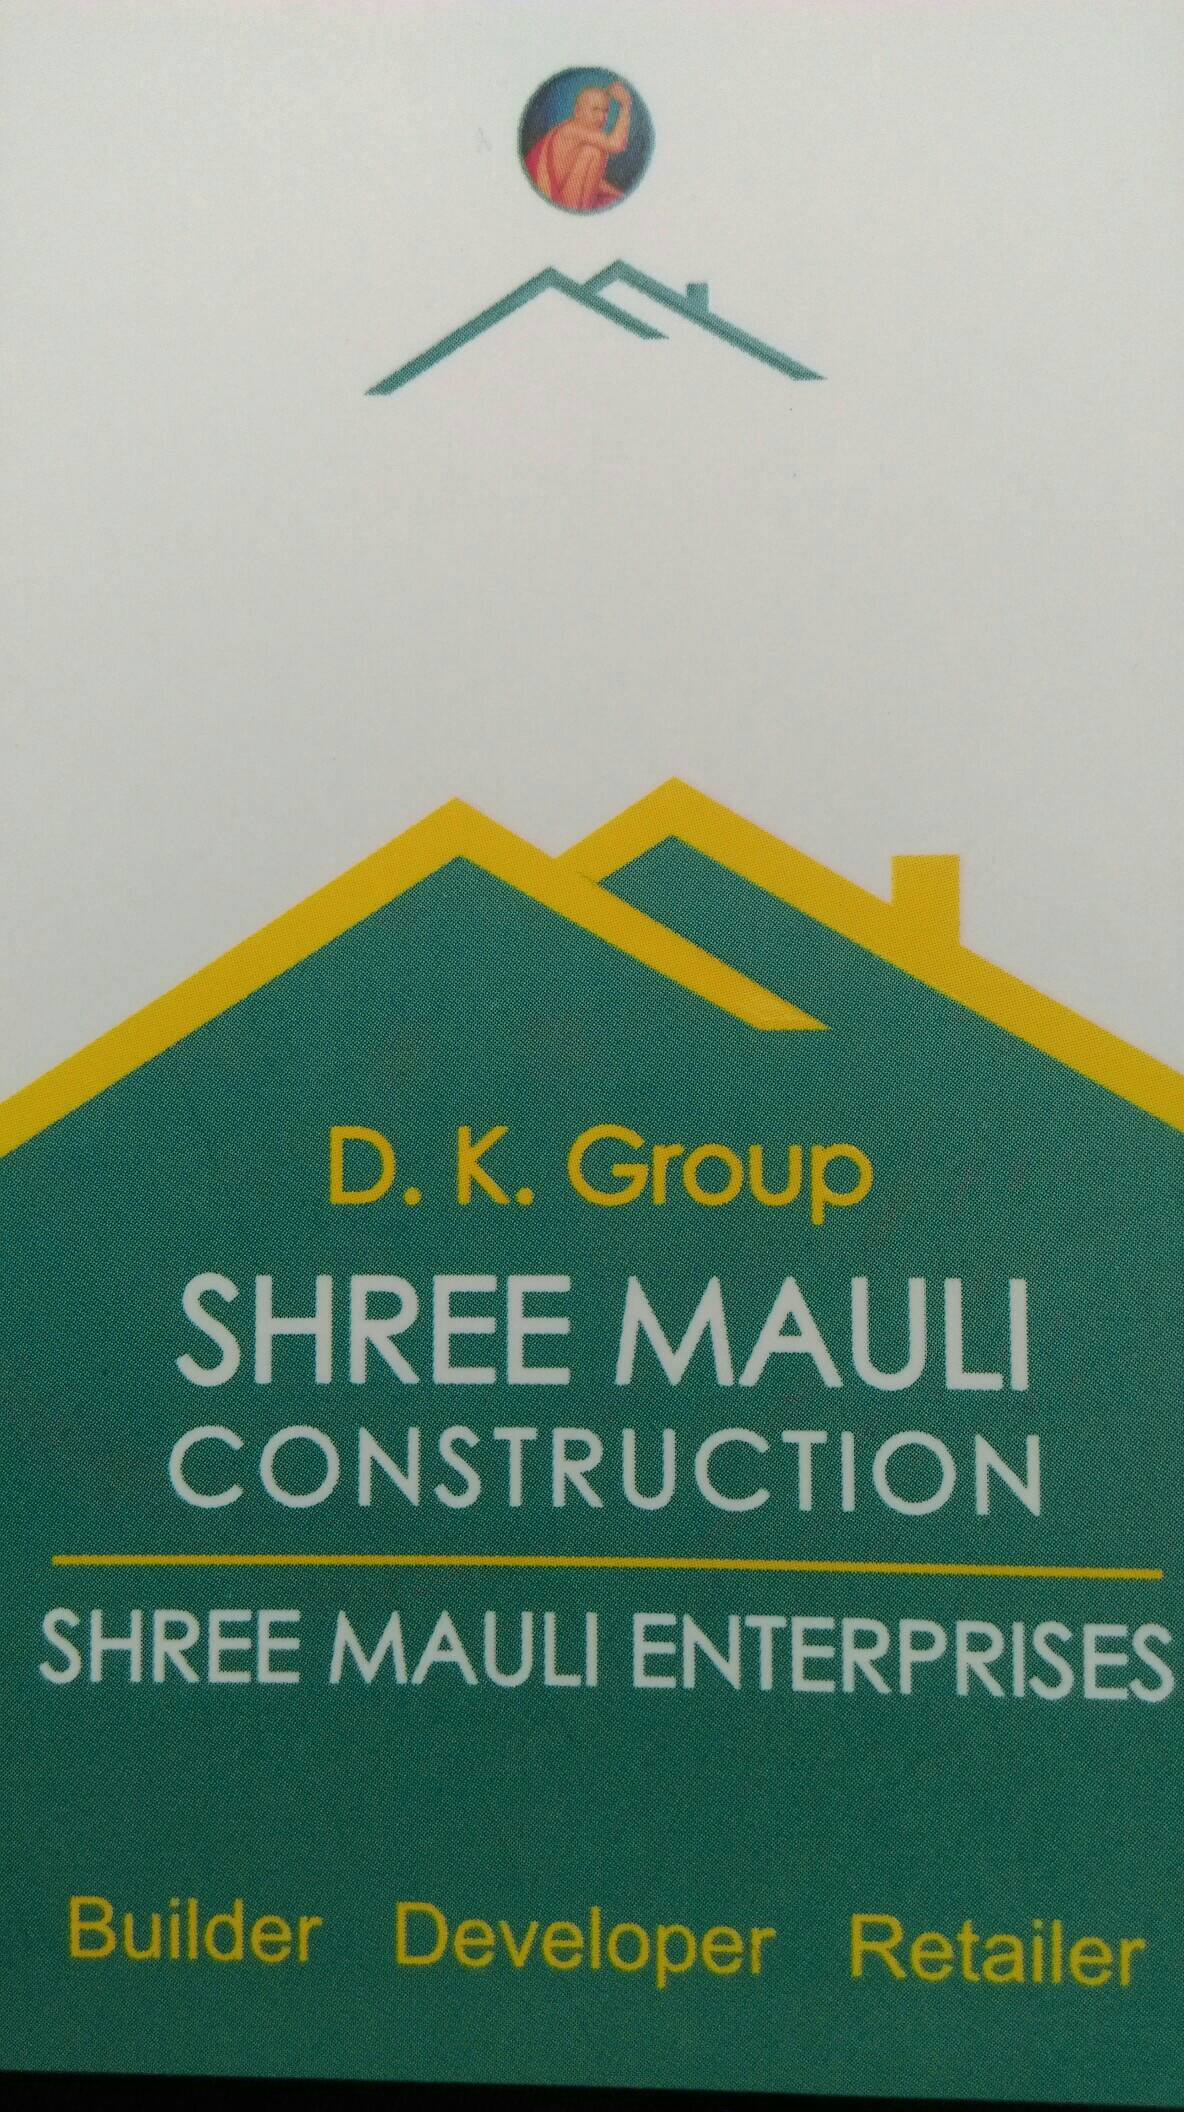 Dk Group Shree Mauli Construction - logo